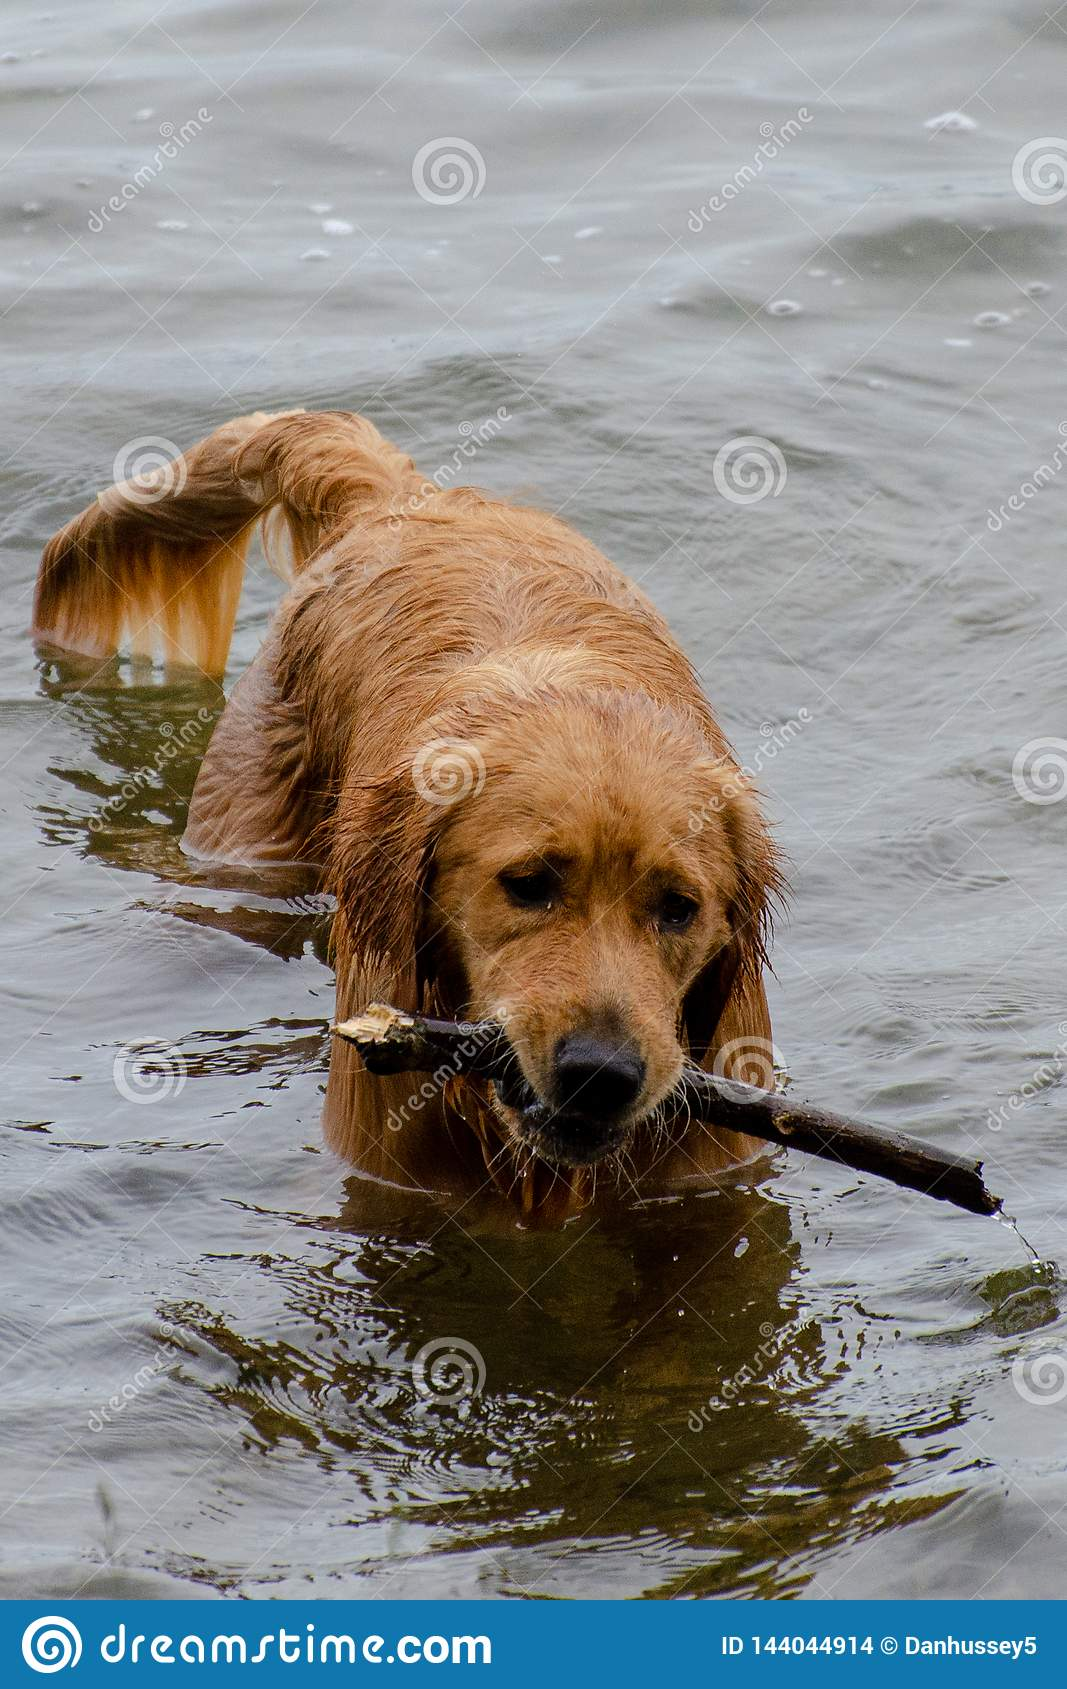 Dog fetching a stick in the lake